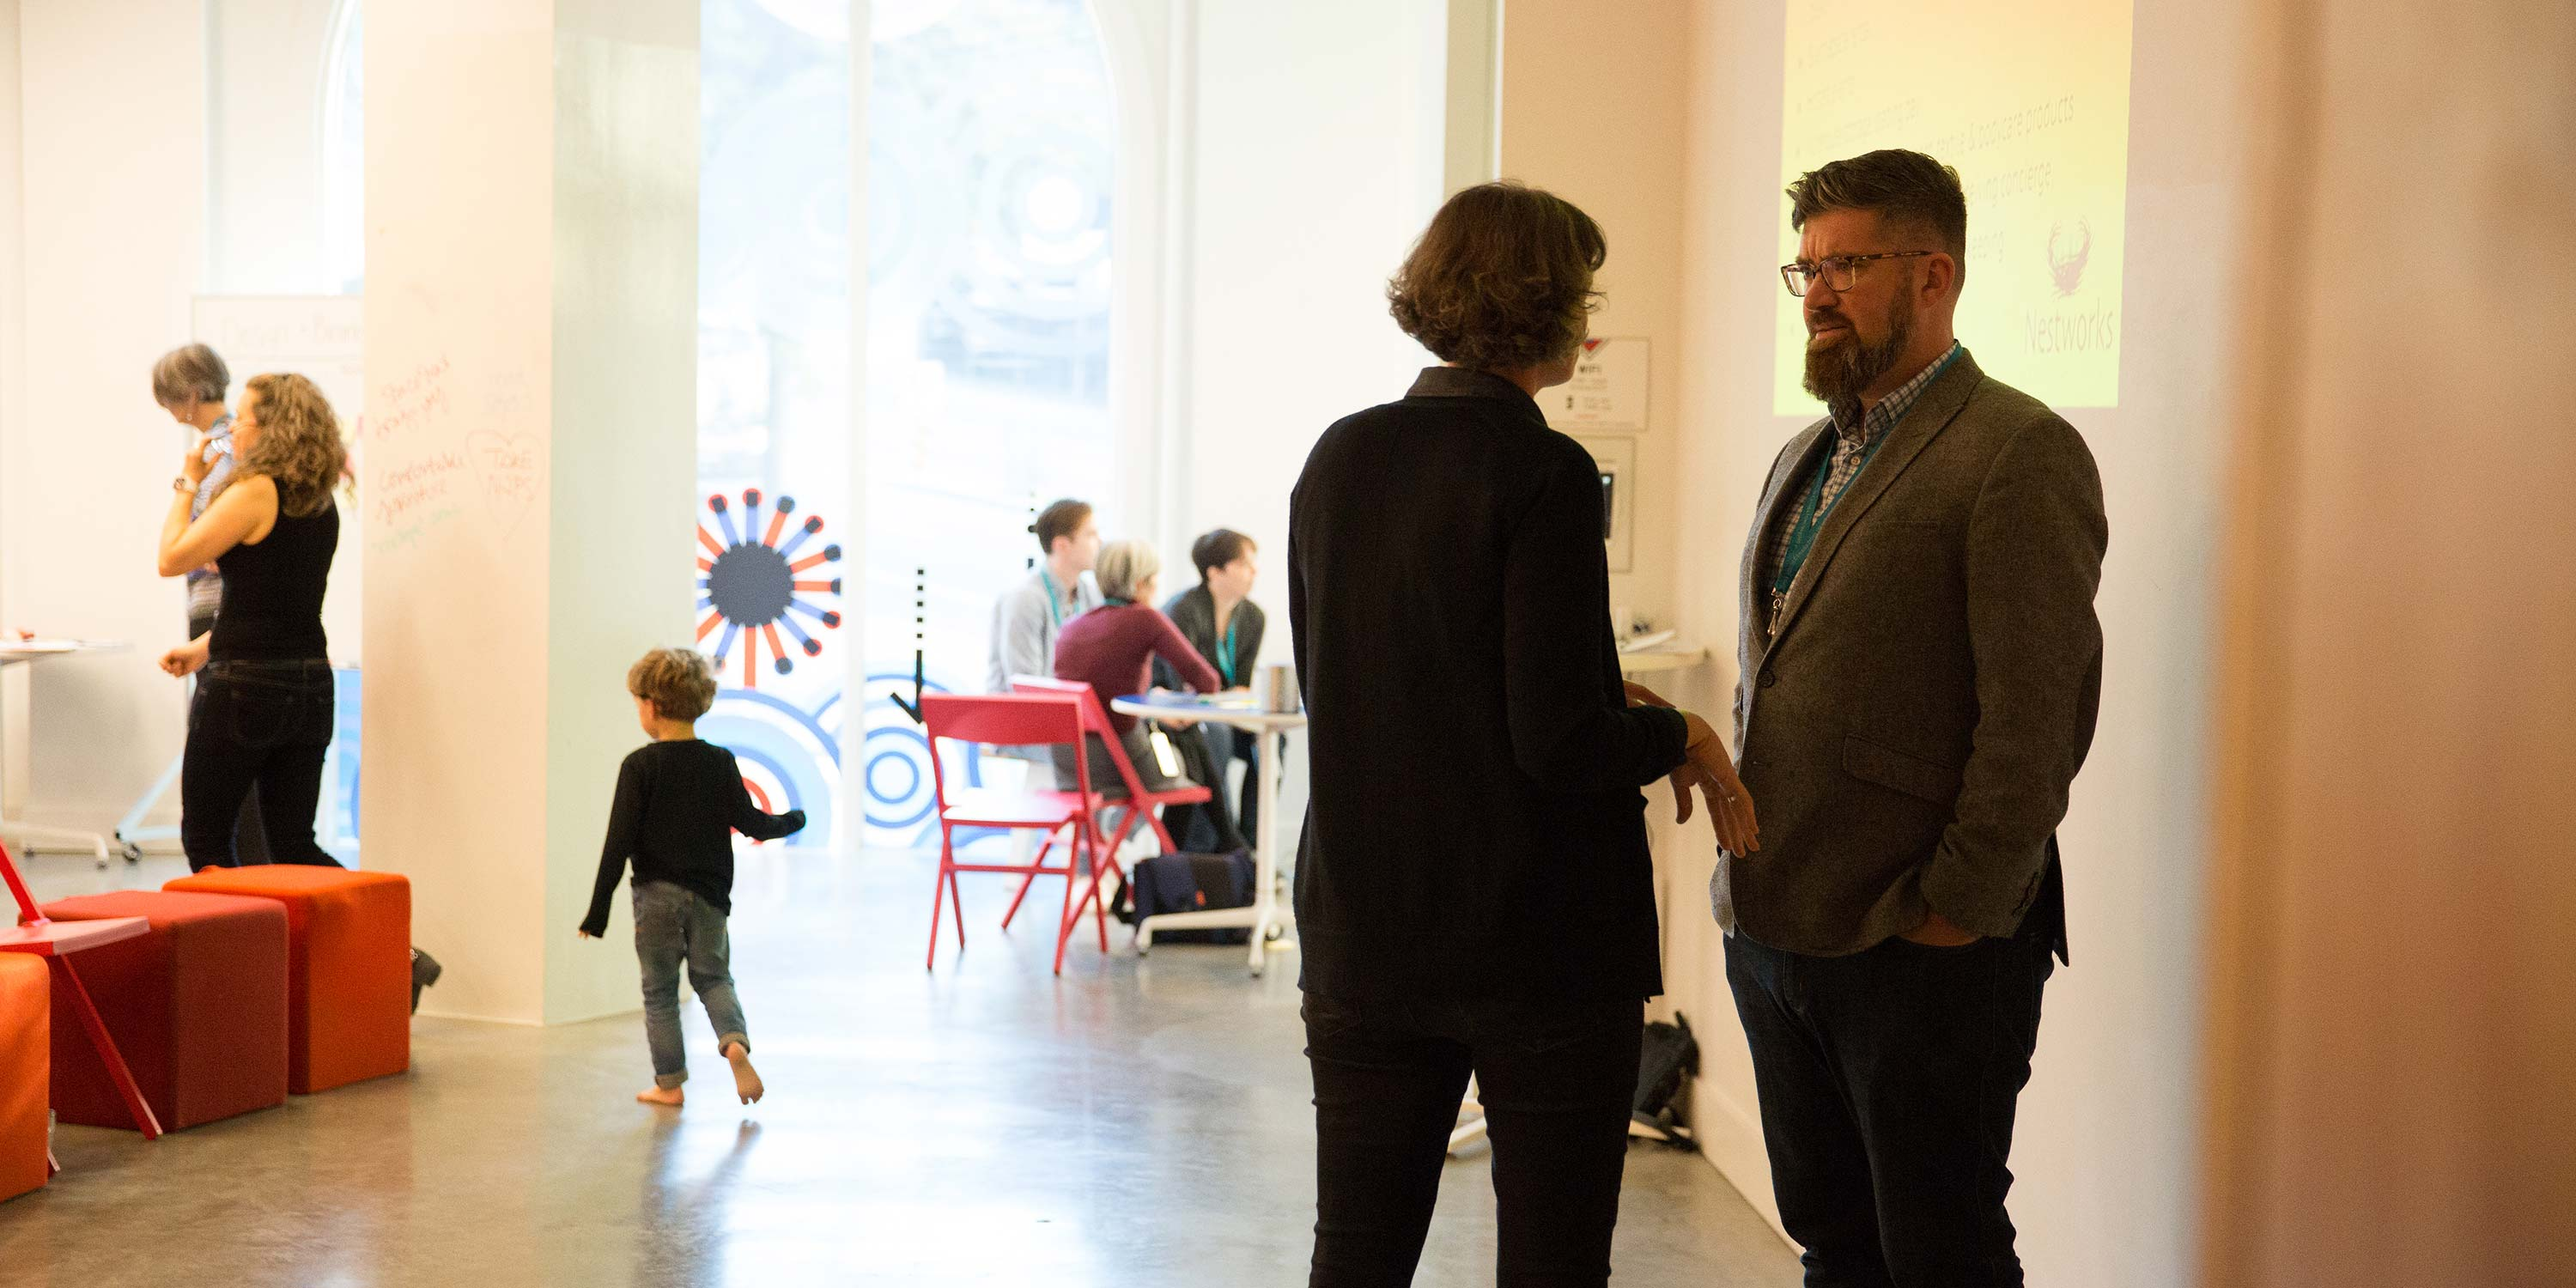 well-lit hallway, male and female talking in foreground, toddler running in middle, group of people in background